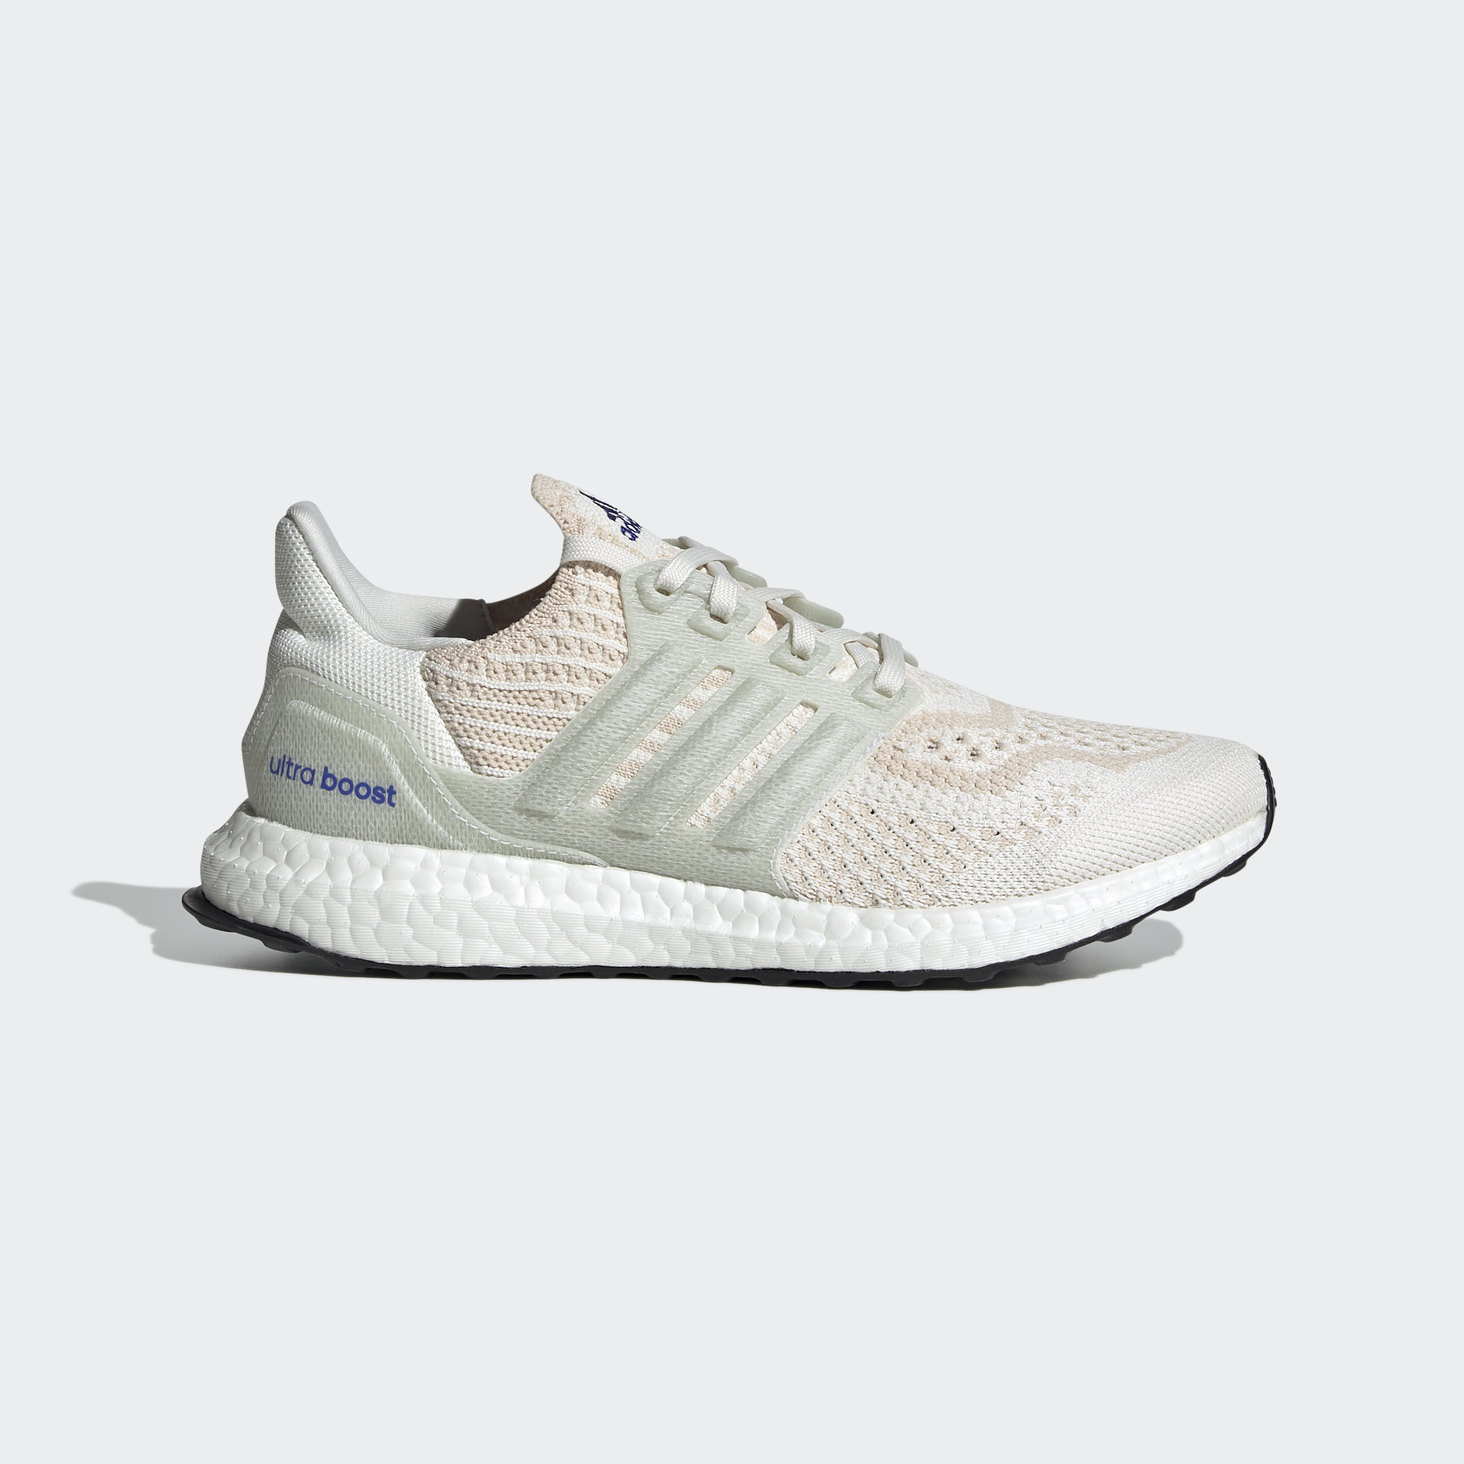 ULTRABOOST 6.0 DNA SHOES